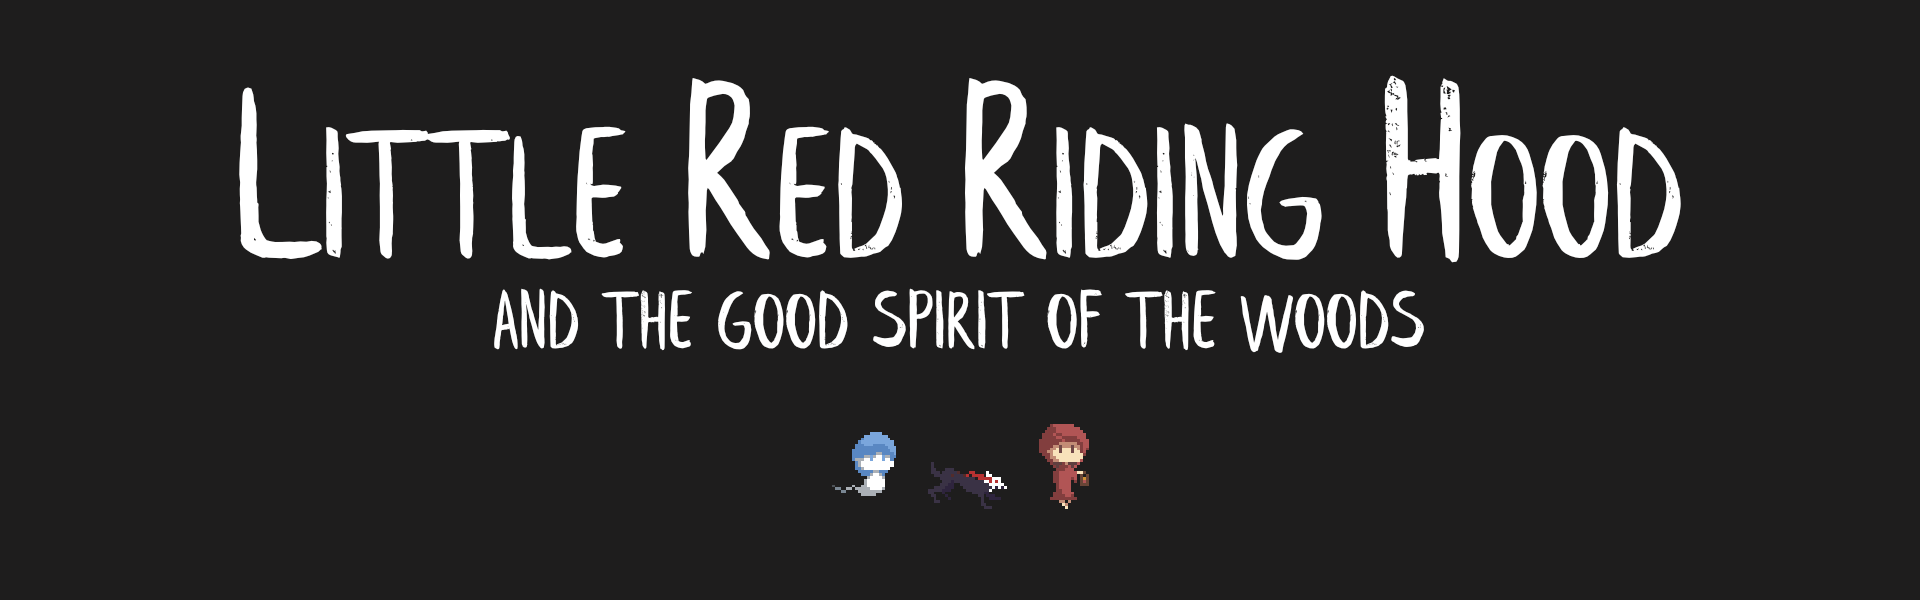 Little Red Riding Hood and the Good Spirit of the Woods